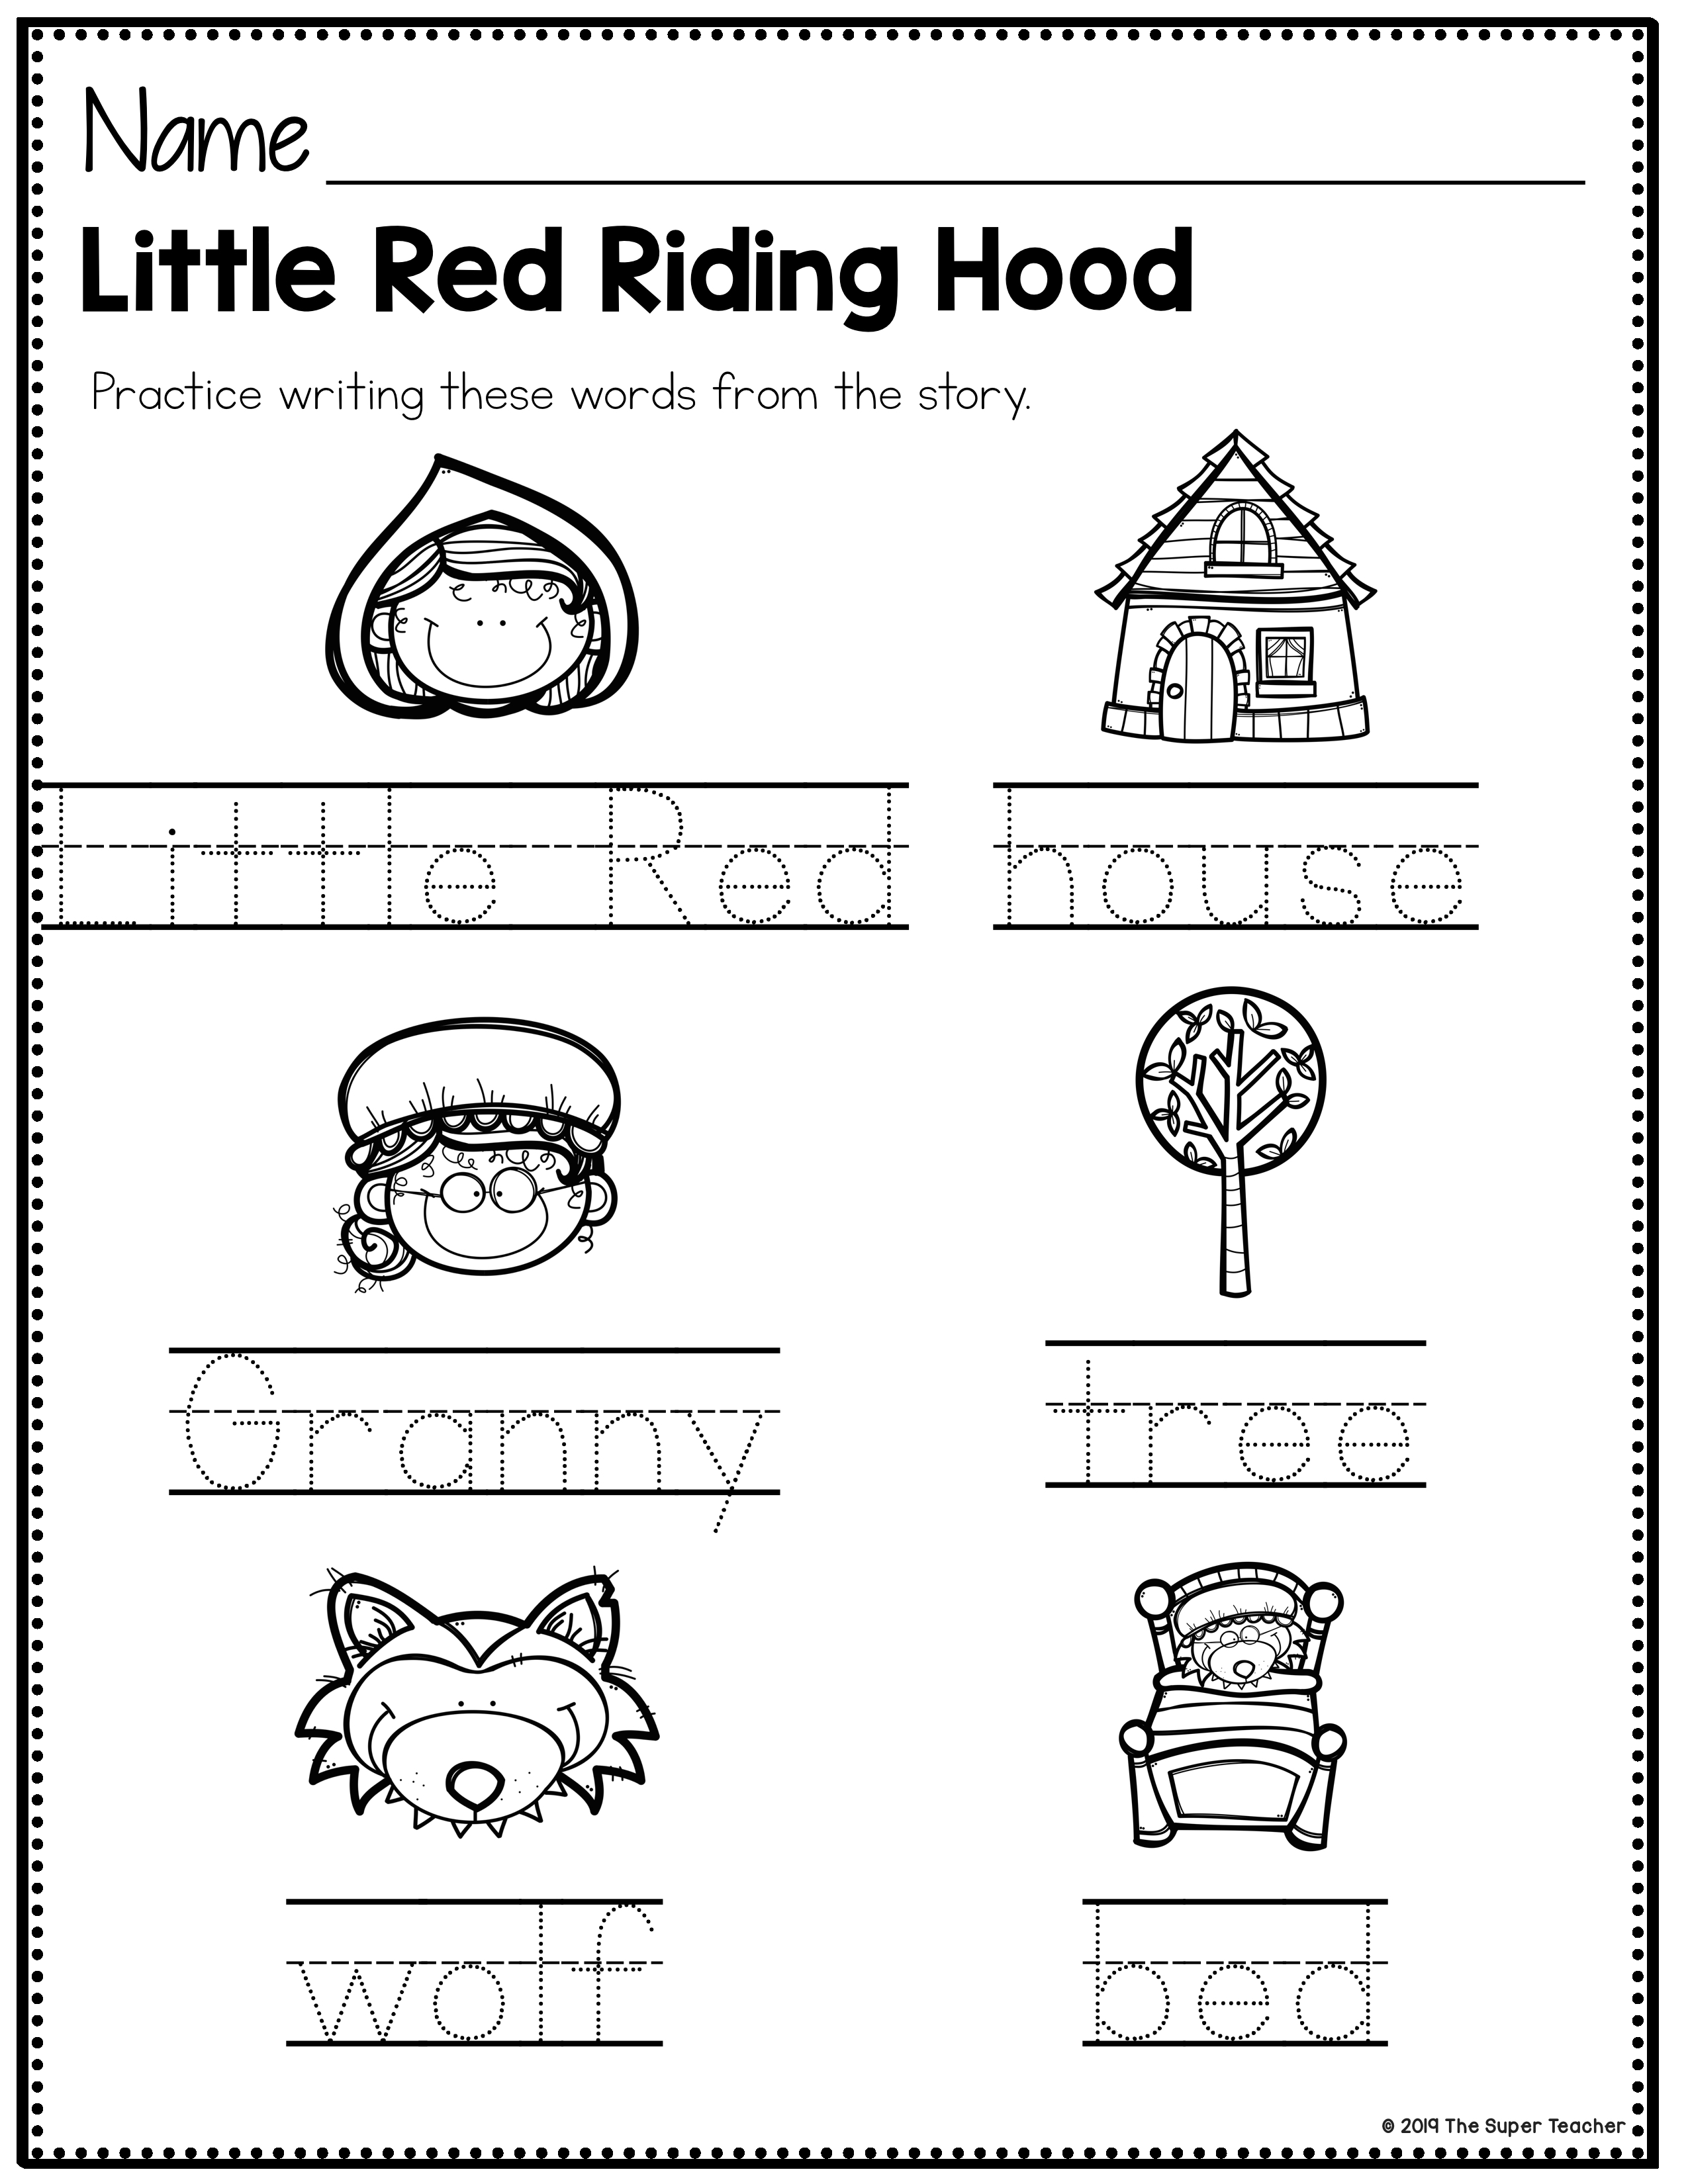 Little Red Riding Hood Unsecure 006 The Super Teacher